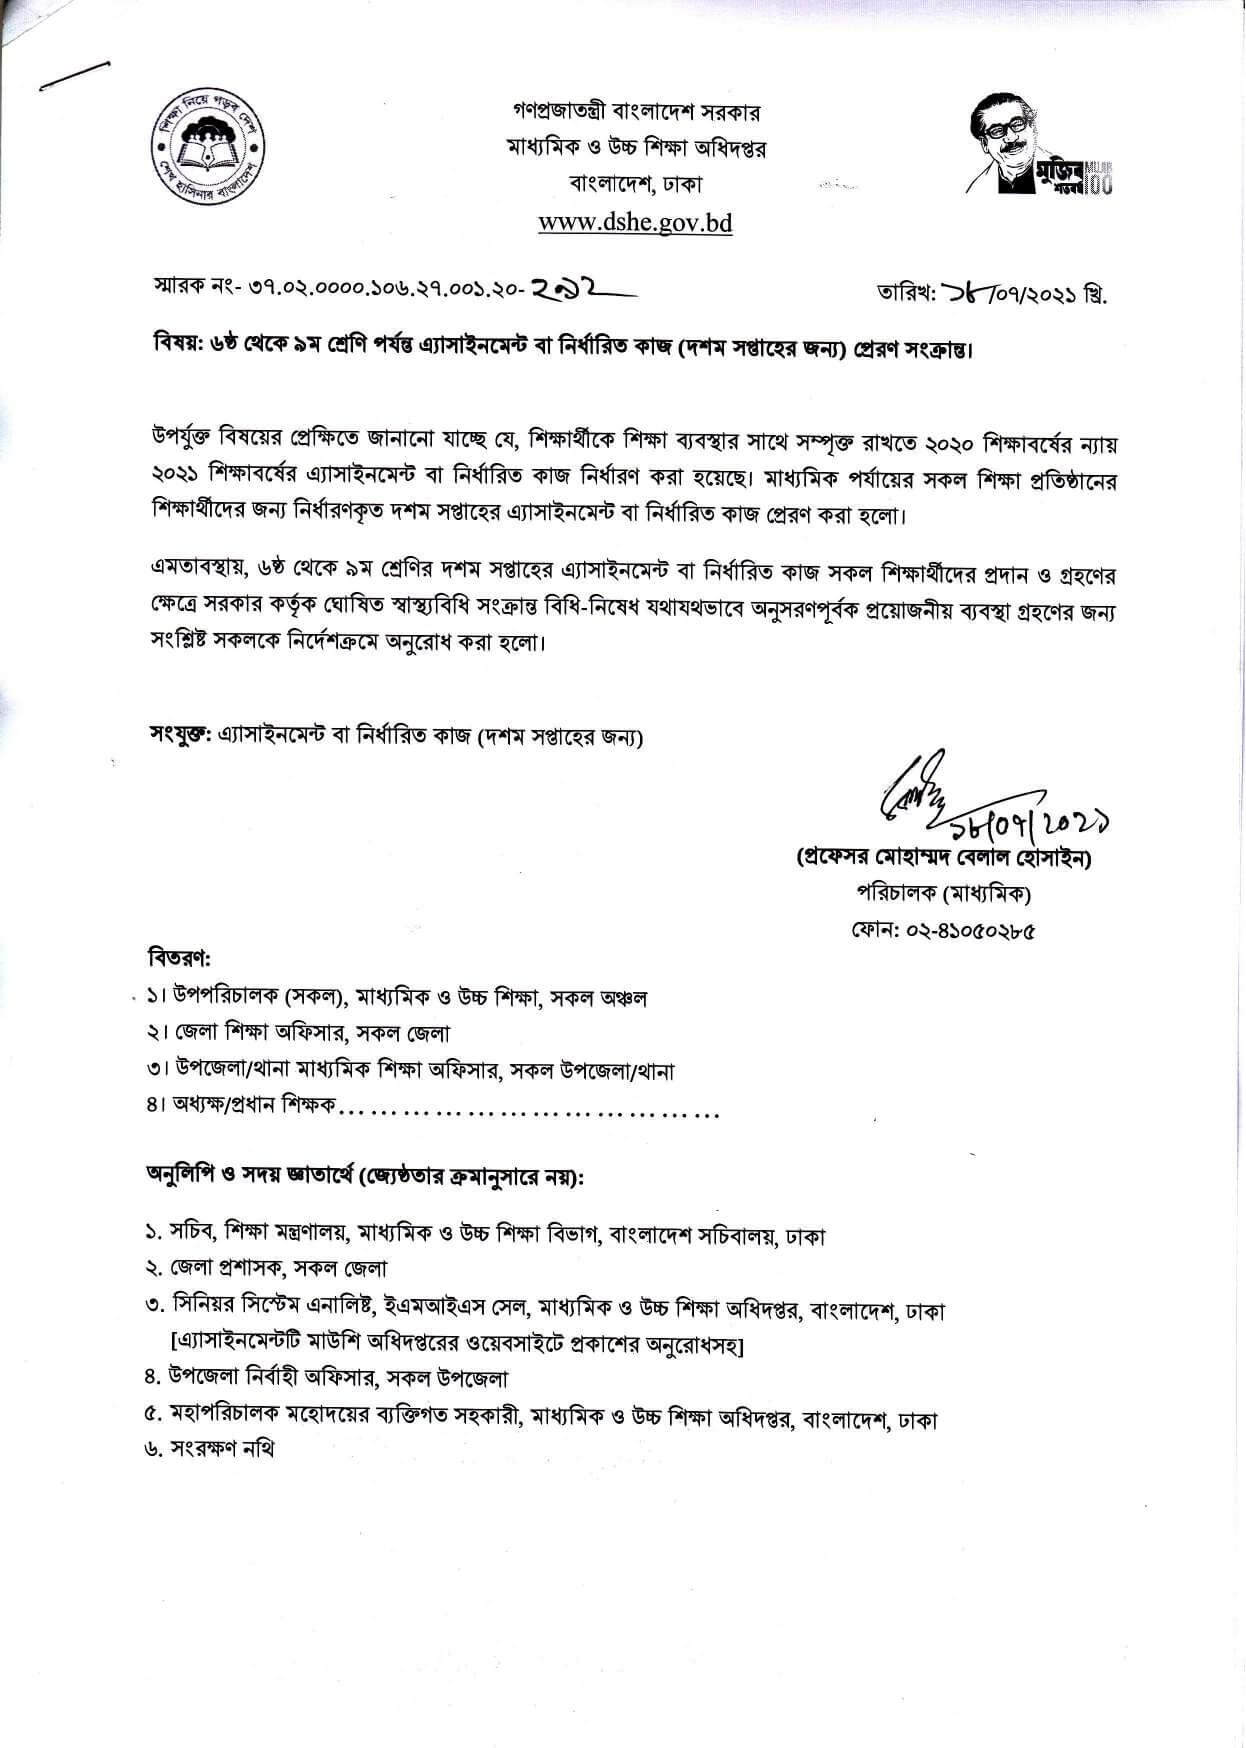 DSHE 10th Week Assignment Notice 2021